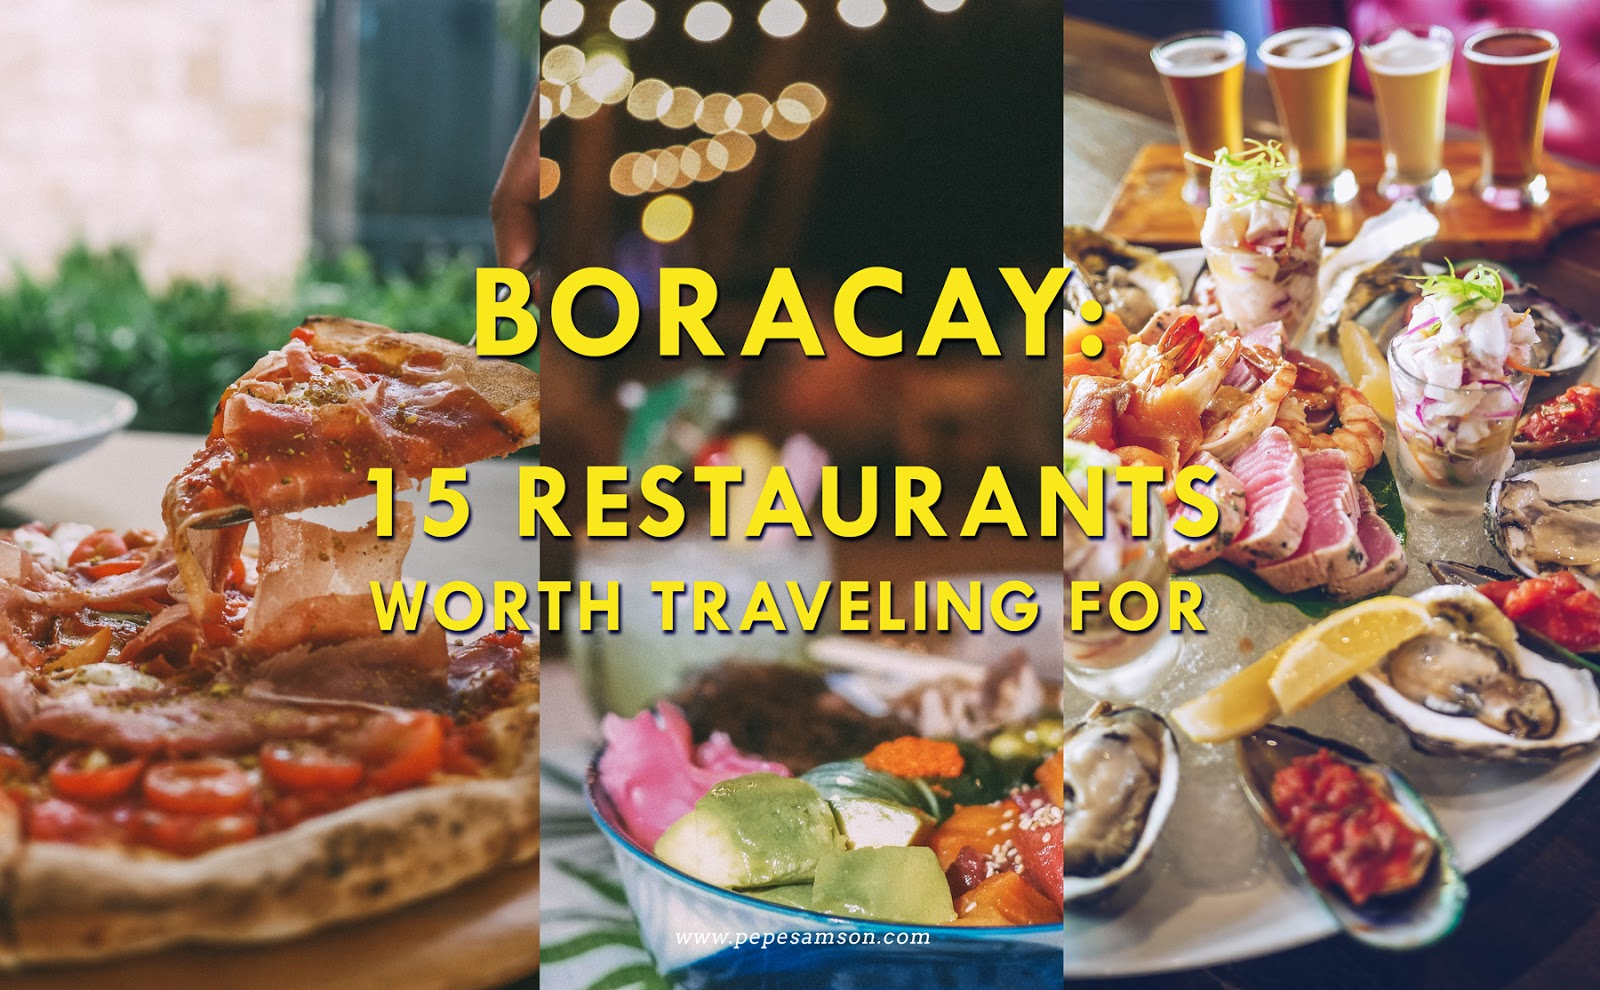 Boracay Food Trip: 15 Restaurants Worth Traveling For